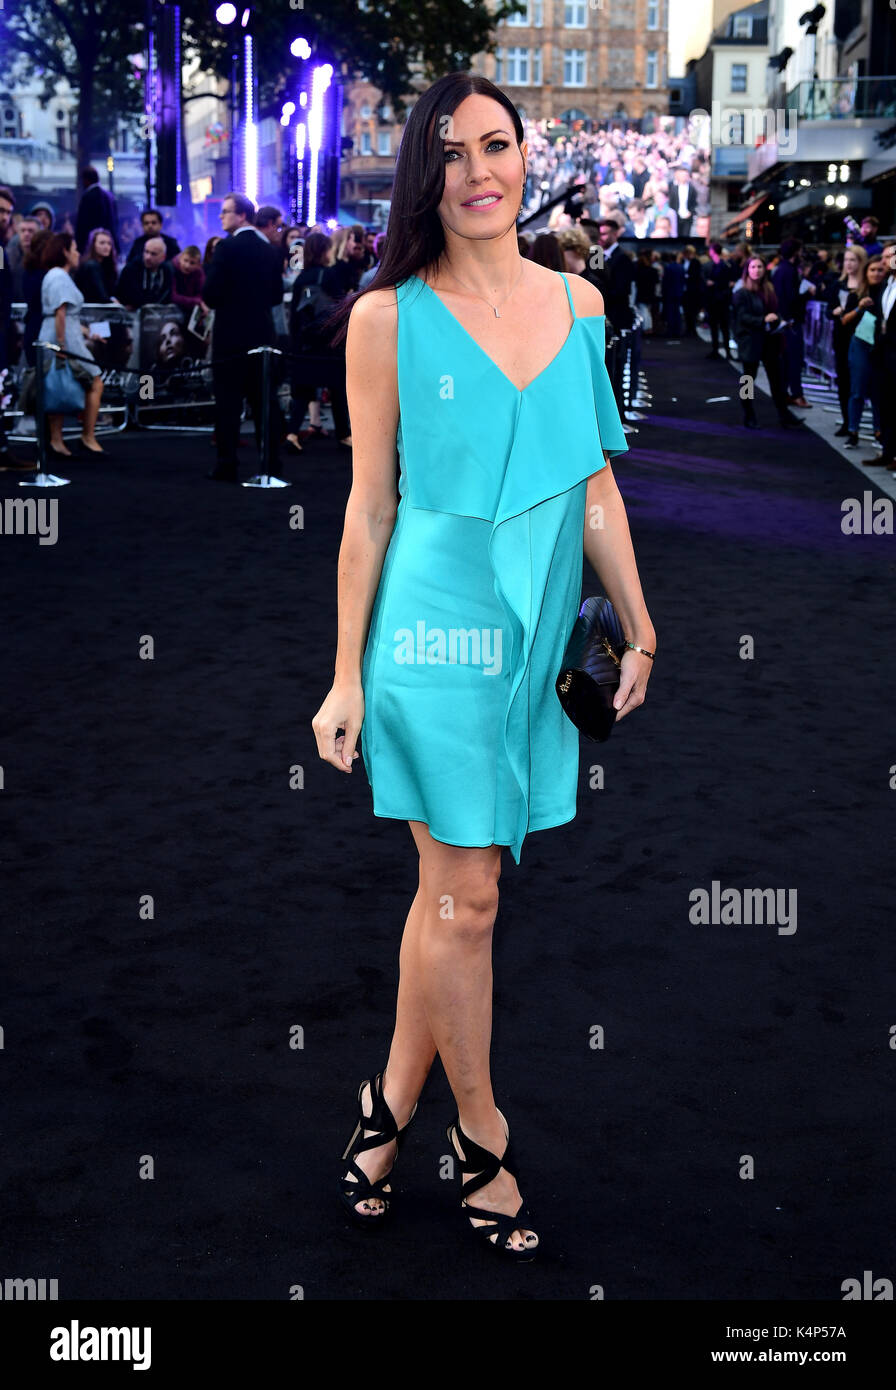 Linzi Stoppard attending the Mother! premiere at the Odeon Cinema, Leicester Square, London. - Stock Image